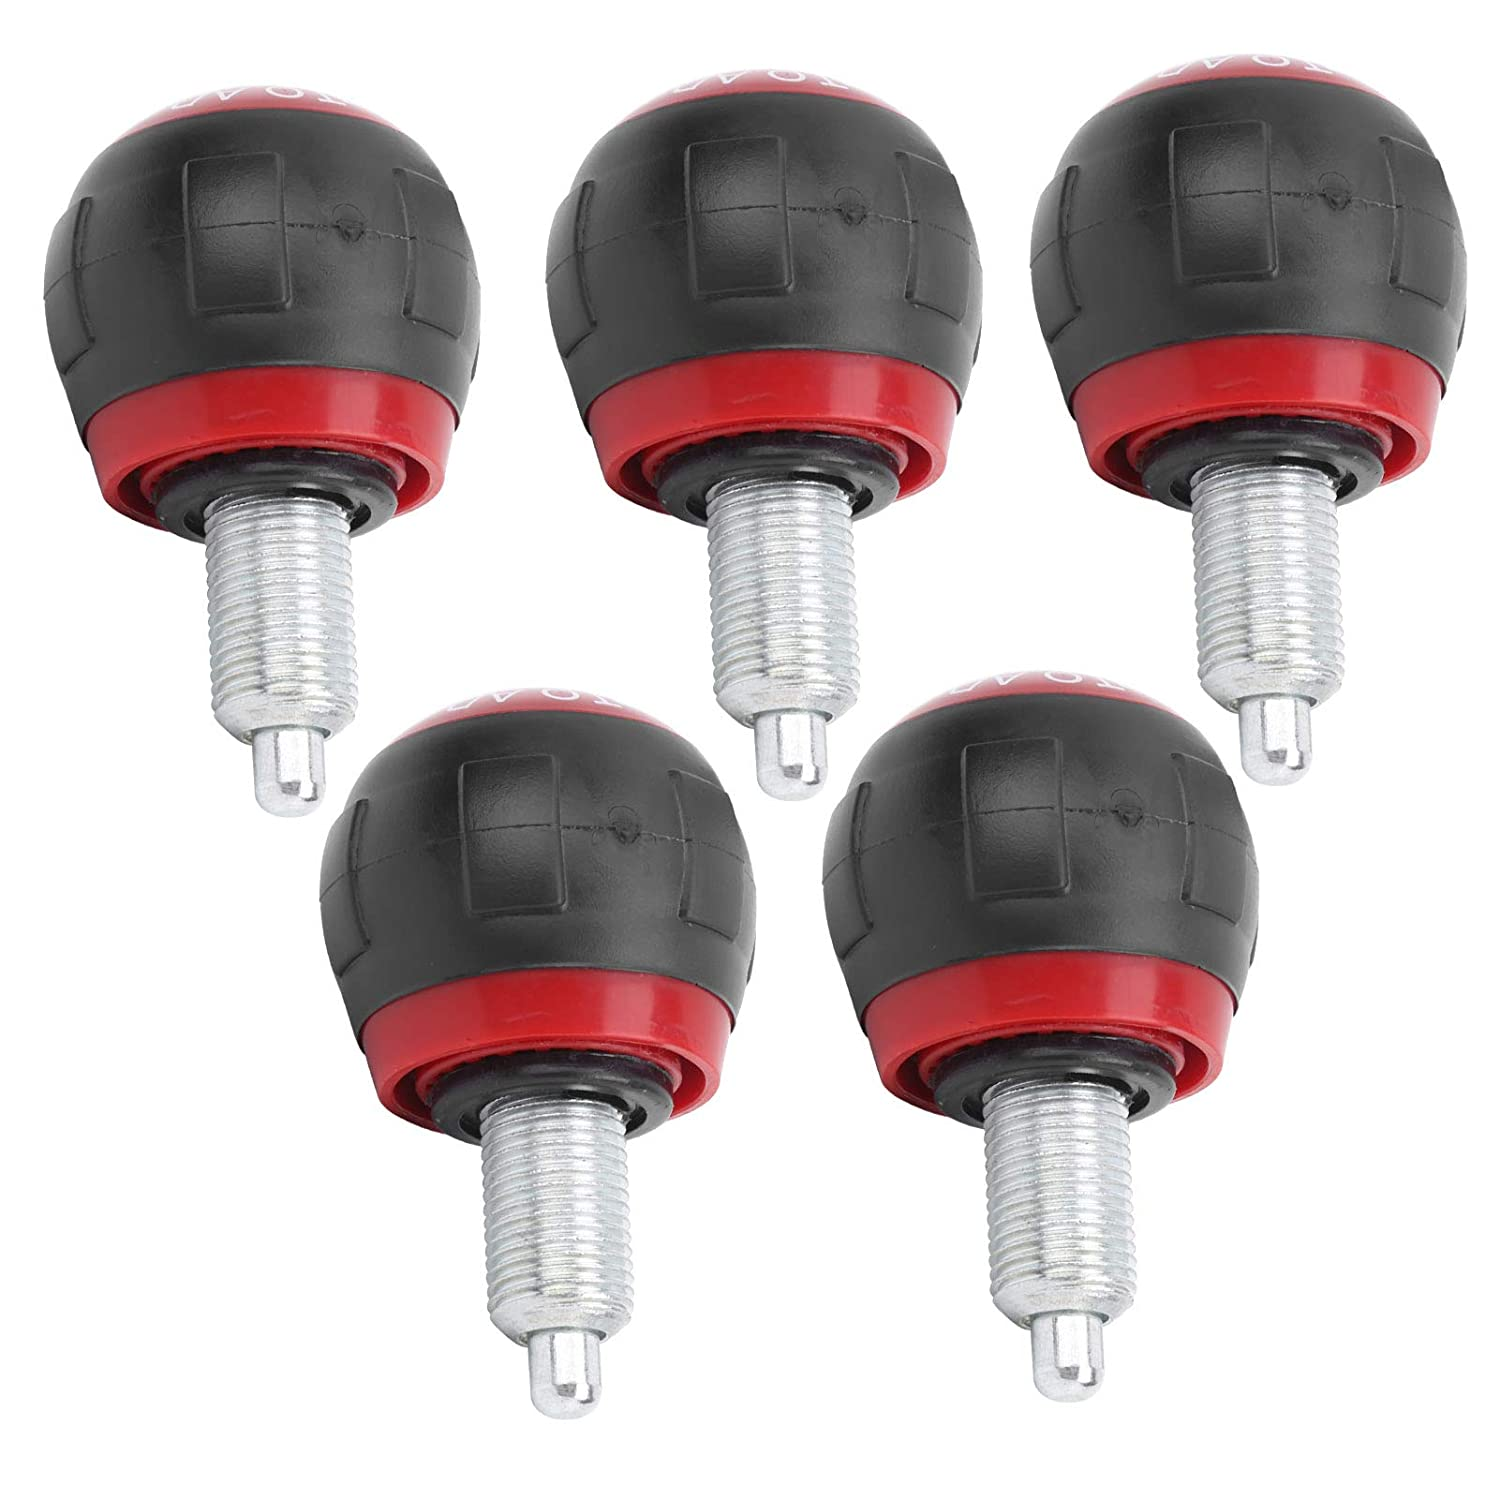 Black red Fitness Pop Pin 5pcs Save Effort Pull Pin Spring Knob Fitness Equipment for Bicycles Exercise Bikes Strength Equipment